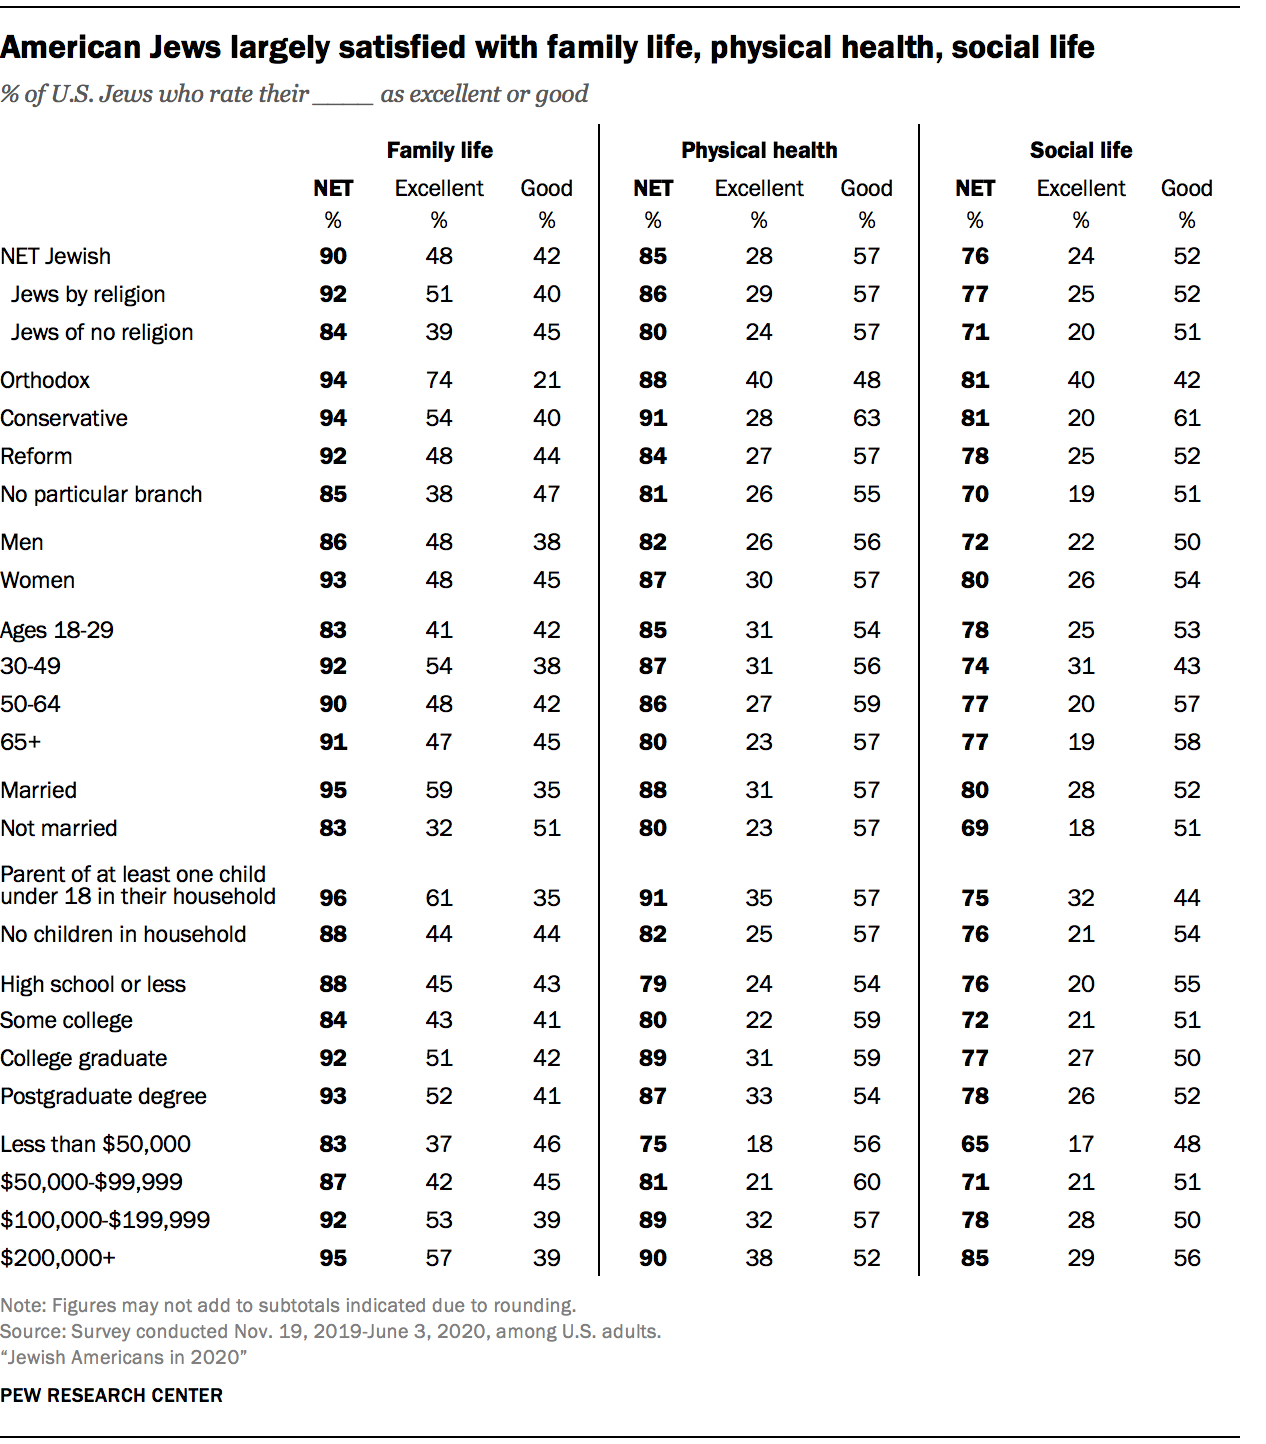 American Jews largely satisfied with family life, physical health, social life